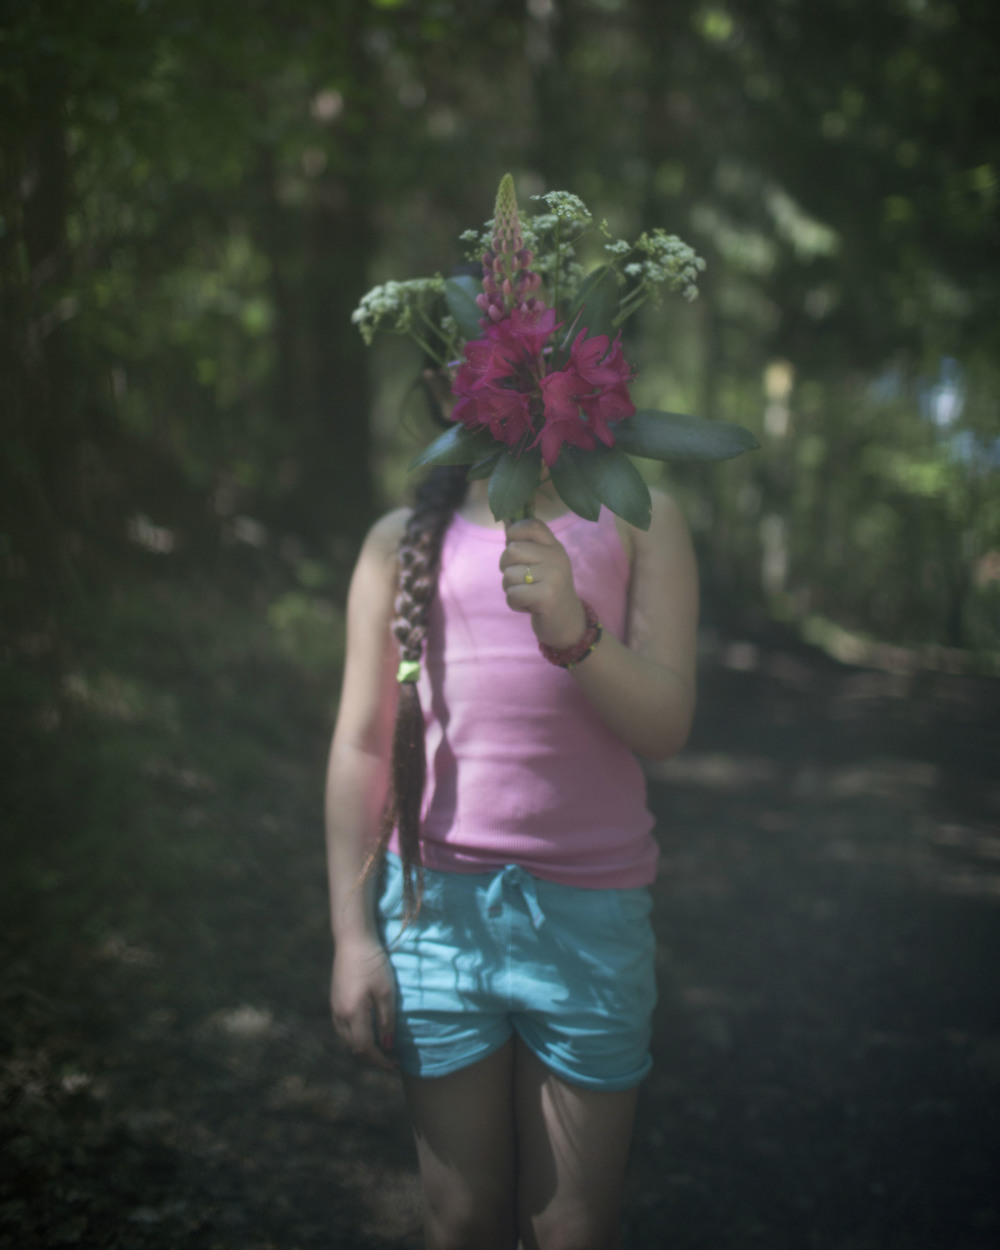 Wild flowers grow everywhere here. The enchanting forest environment invites the children and their mothers to arrange beautiful bouquets together.